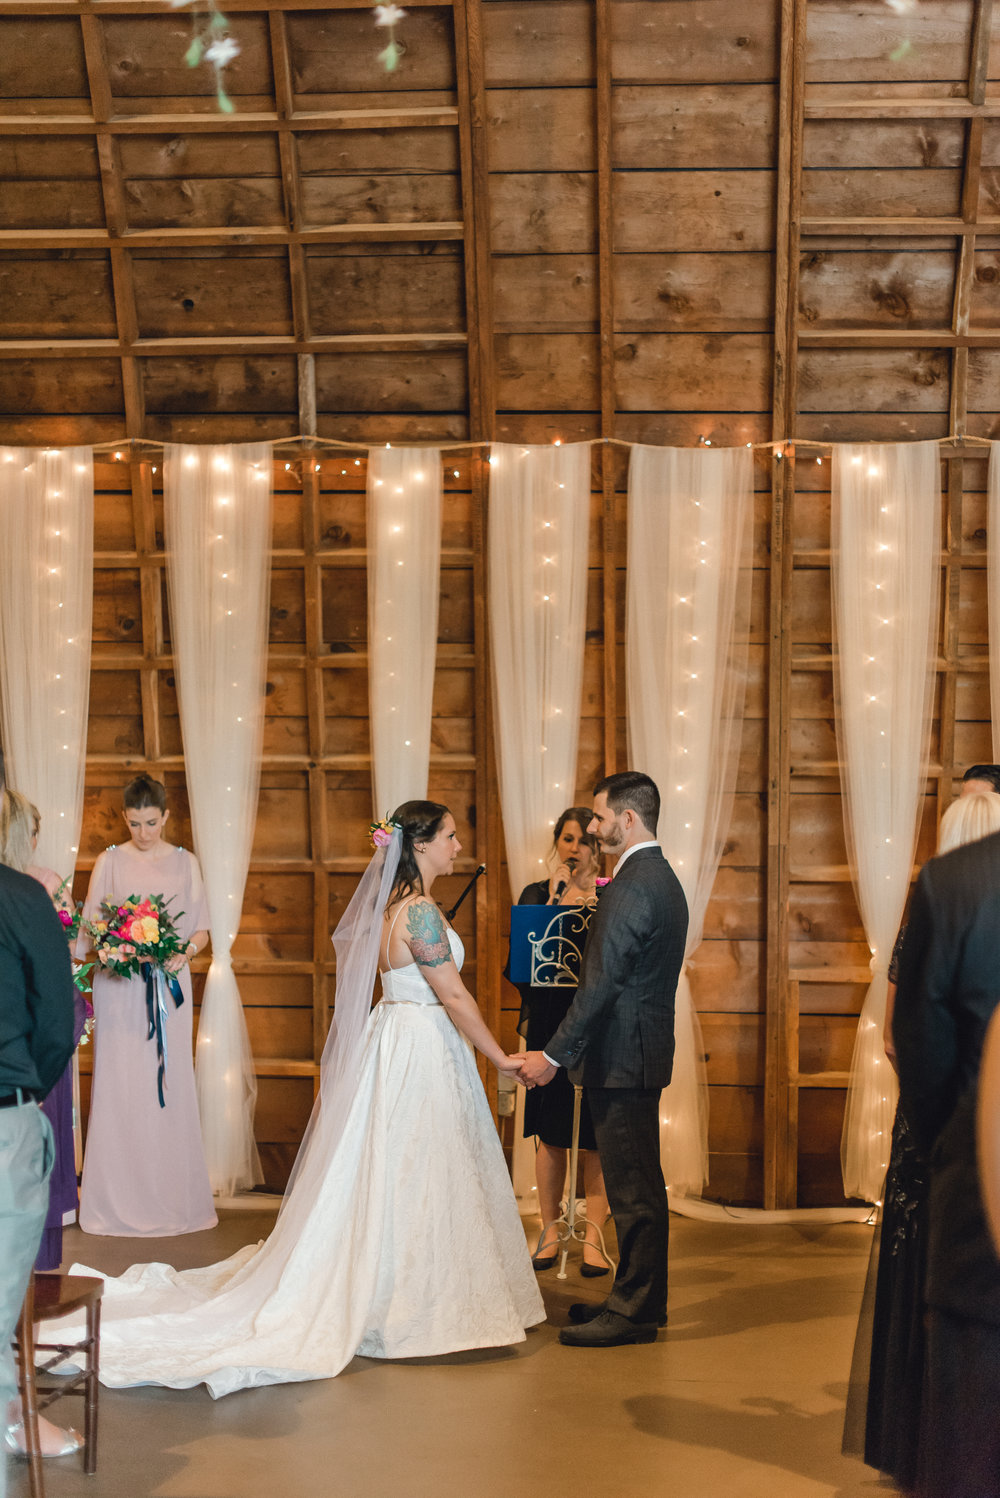 pittsburgh-wedding-bramblewood-farm-barn-wes-anderson-0022.jpg